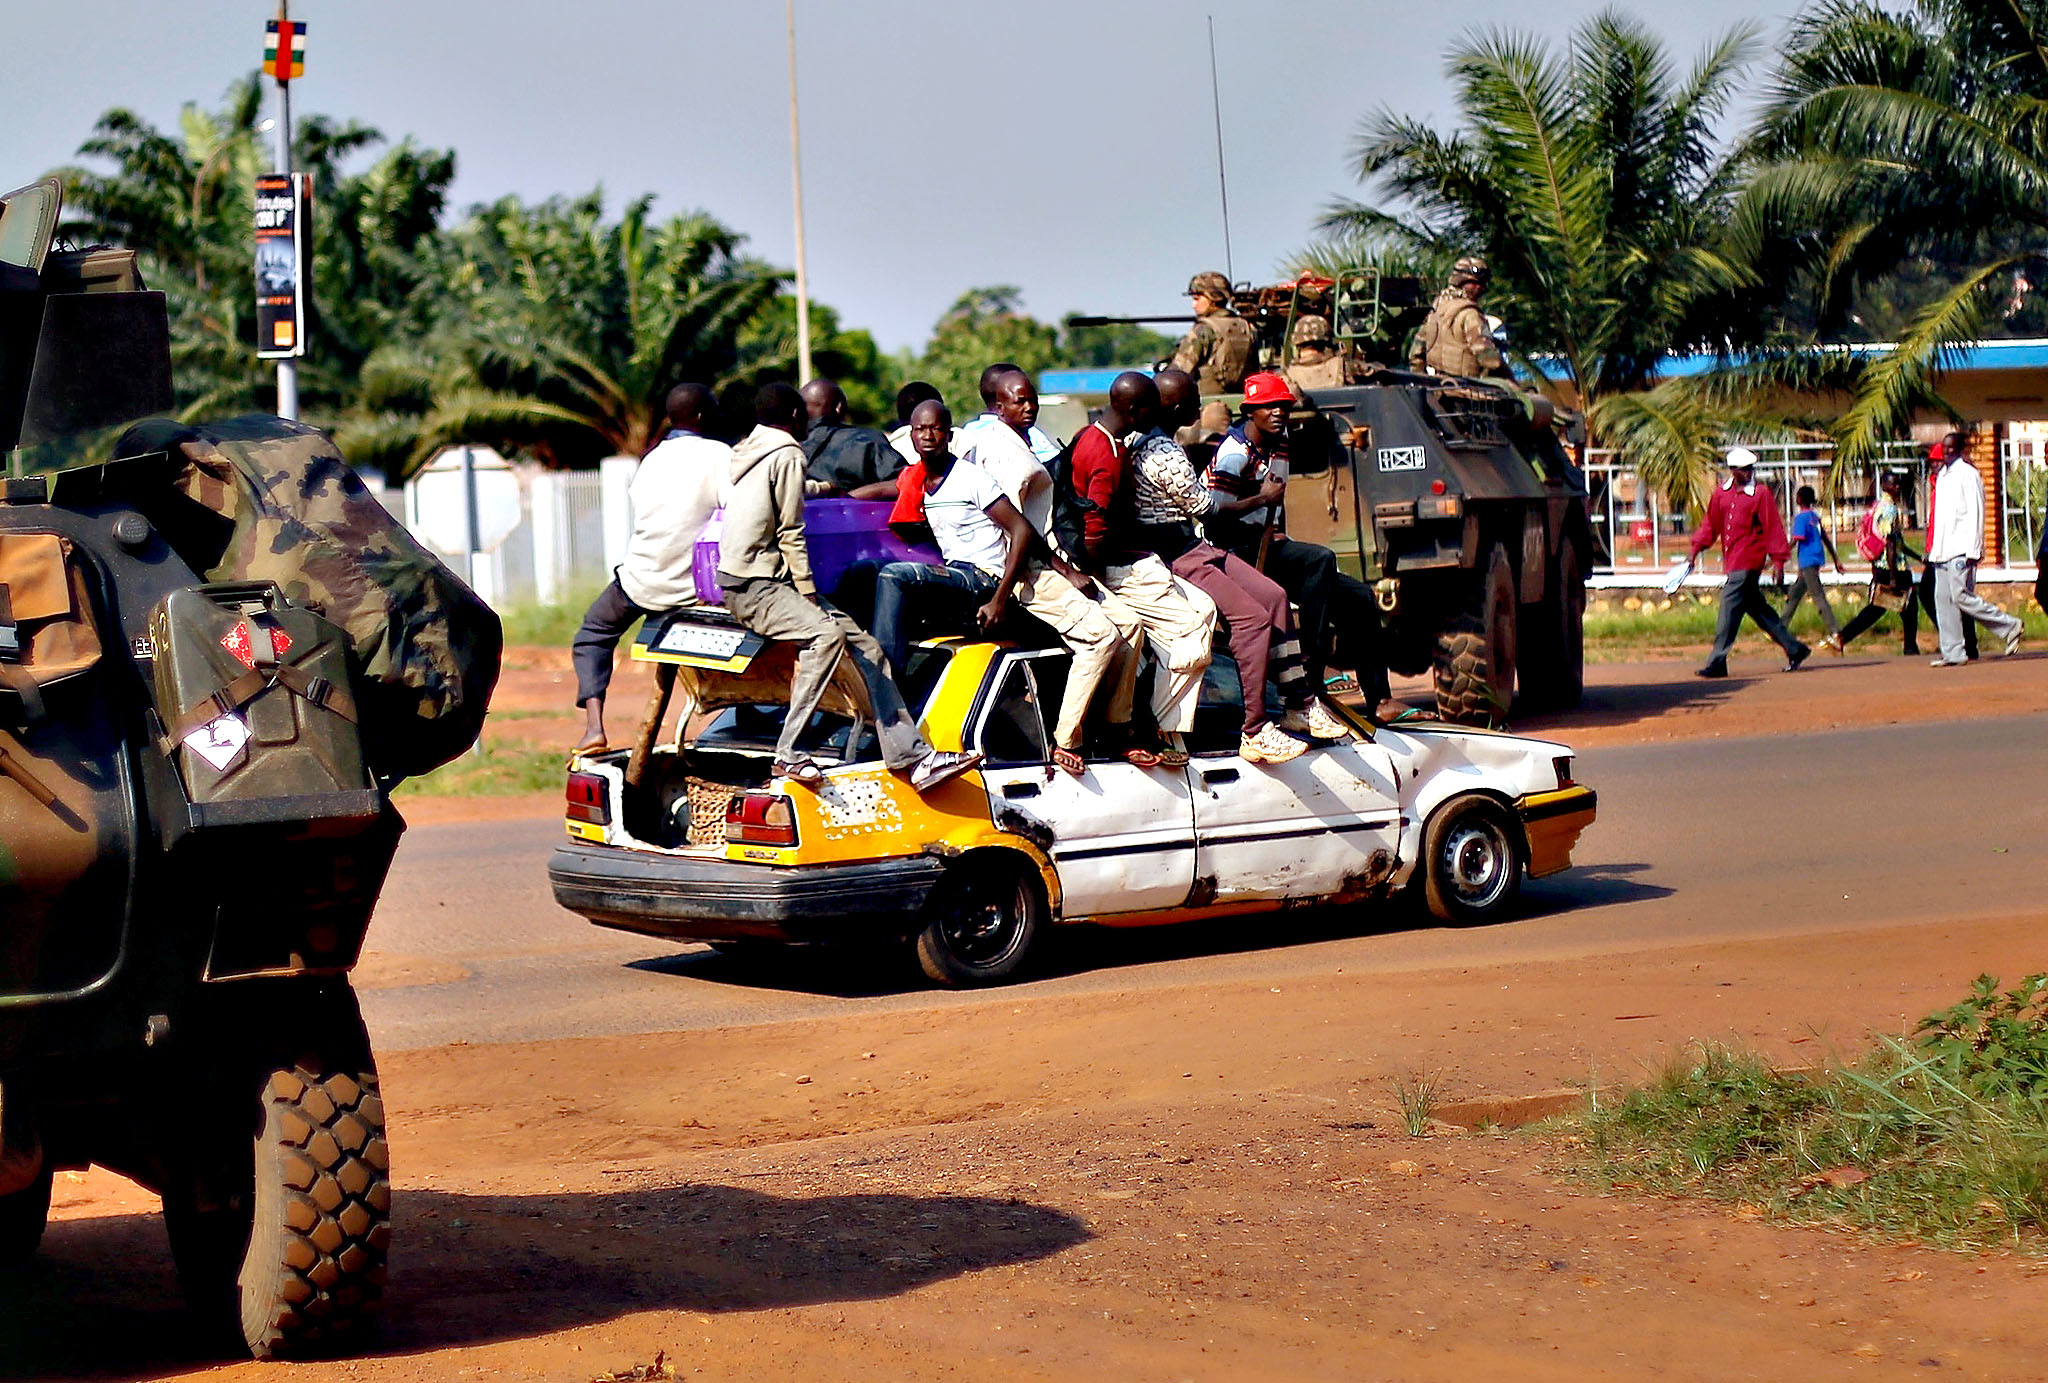 A packed taxi drives past a French checkpoint in Bangui, Central African Republic, Monday Dec. 16, 2013. Over 1600 French troops have been deployed to the country in an effort to put an end to sectarian violence.  More than 600 people have been killed since Anti-Balaka launched a strike over Bangui last week before being pushed back.